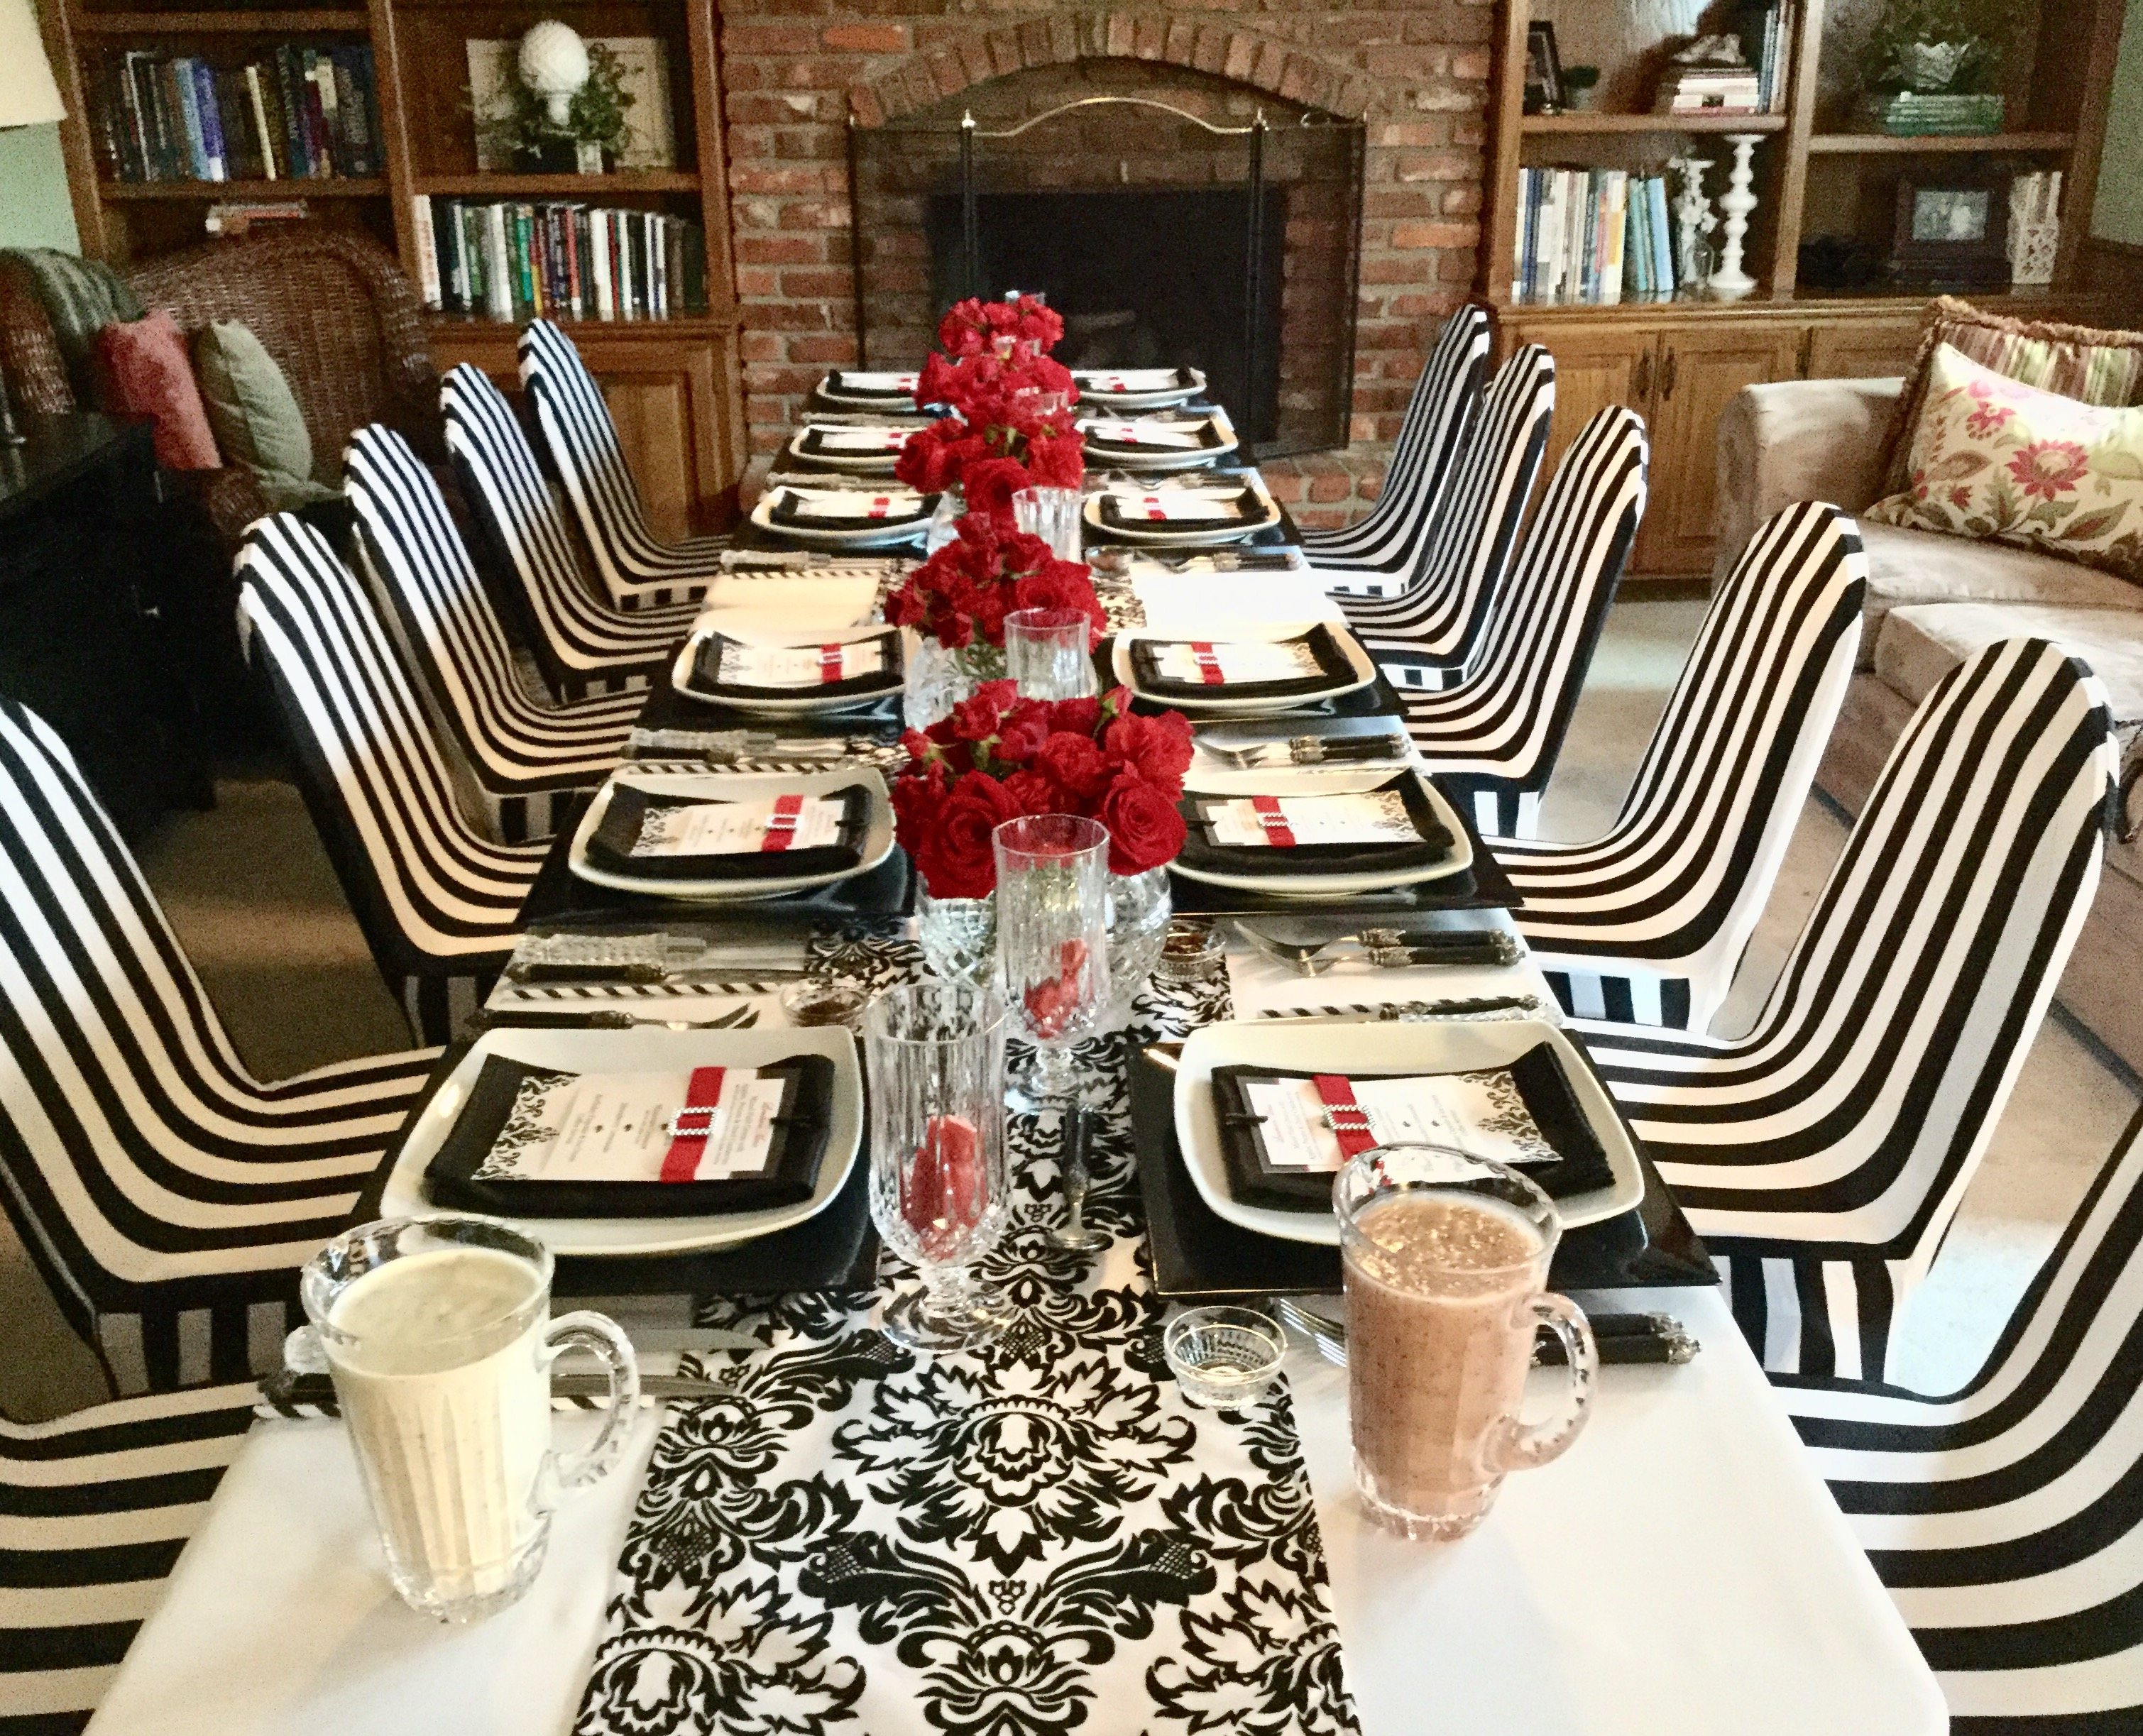 Surprising Tablescape With Striped Stretch Chair Covers Black White Unemploymentrelief Wooden Chair Designs For Living Room Unemploymentrelieforg